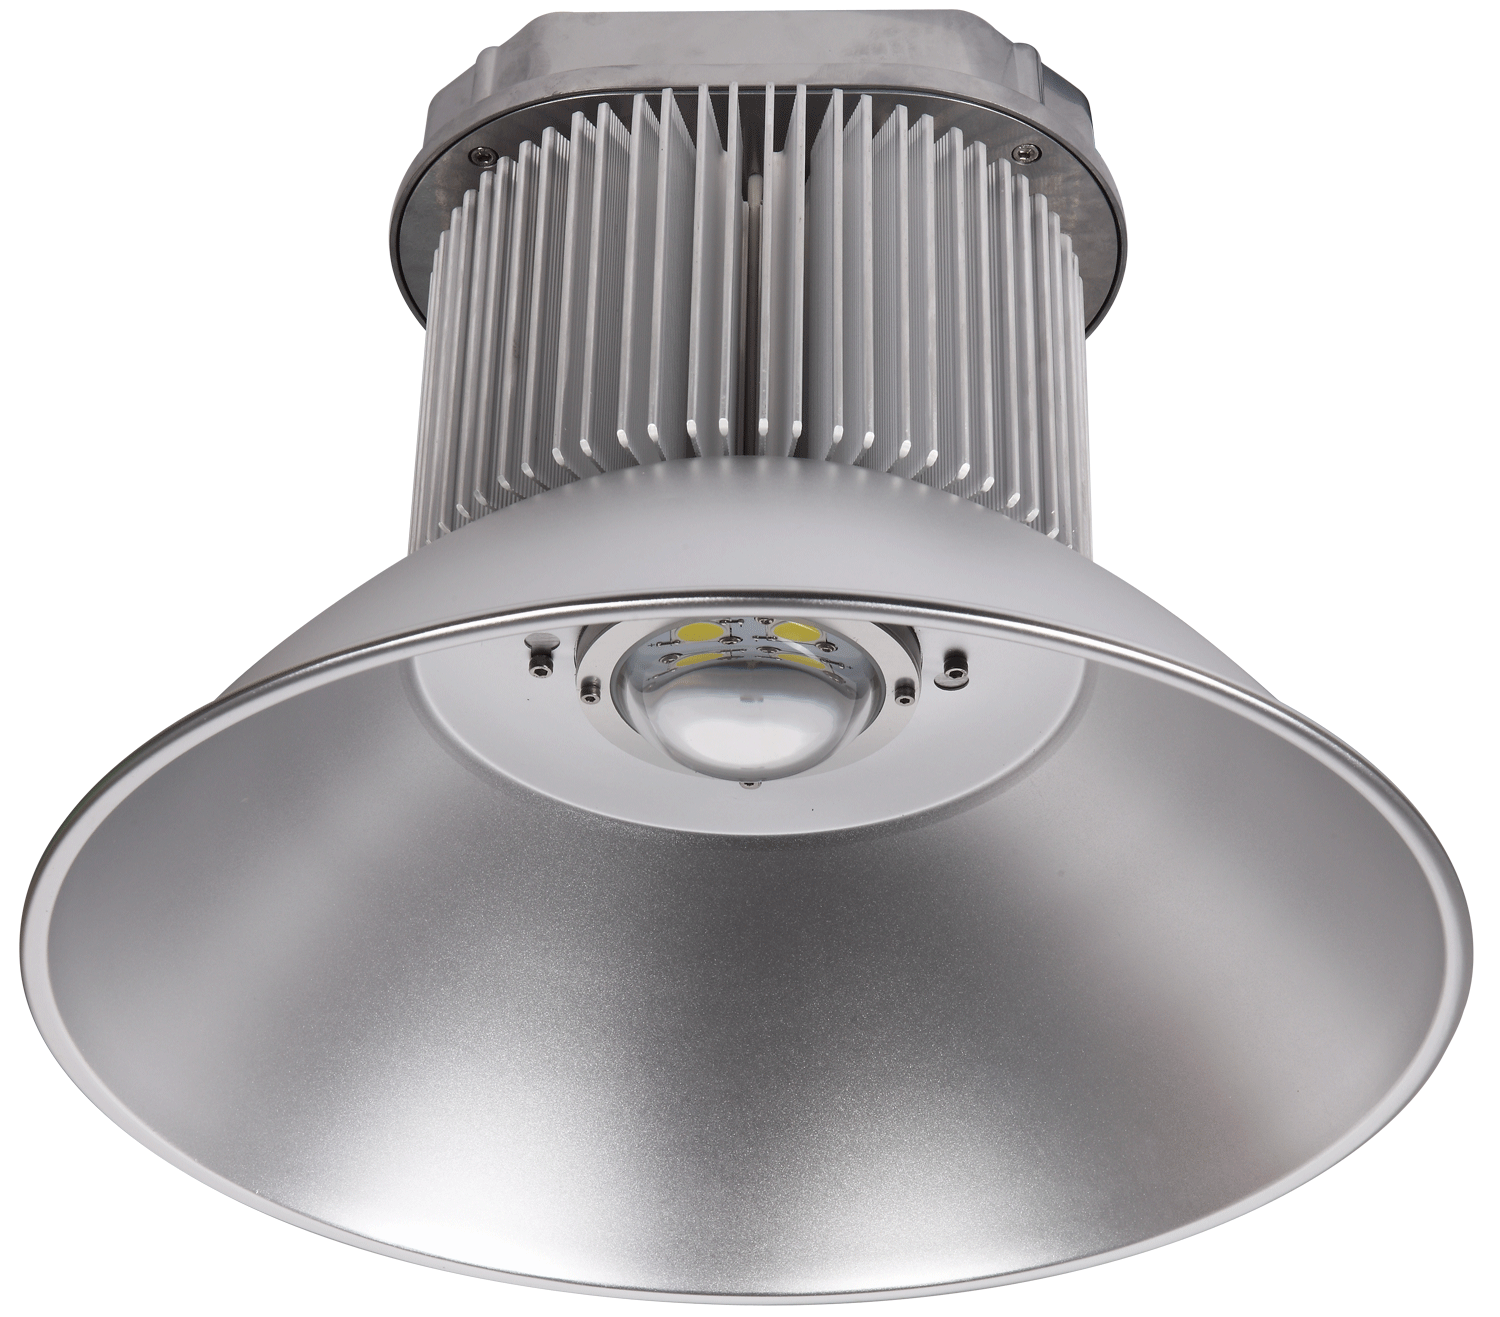 Led High Bay Lights Ireland: LED High Bay Light India. For More Details: Visit At: Http